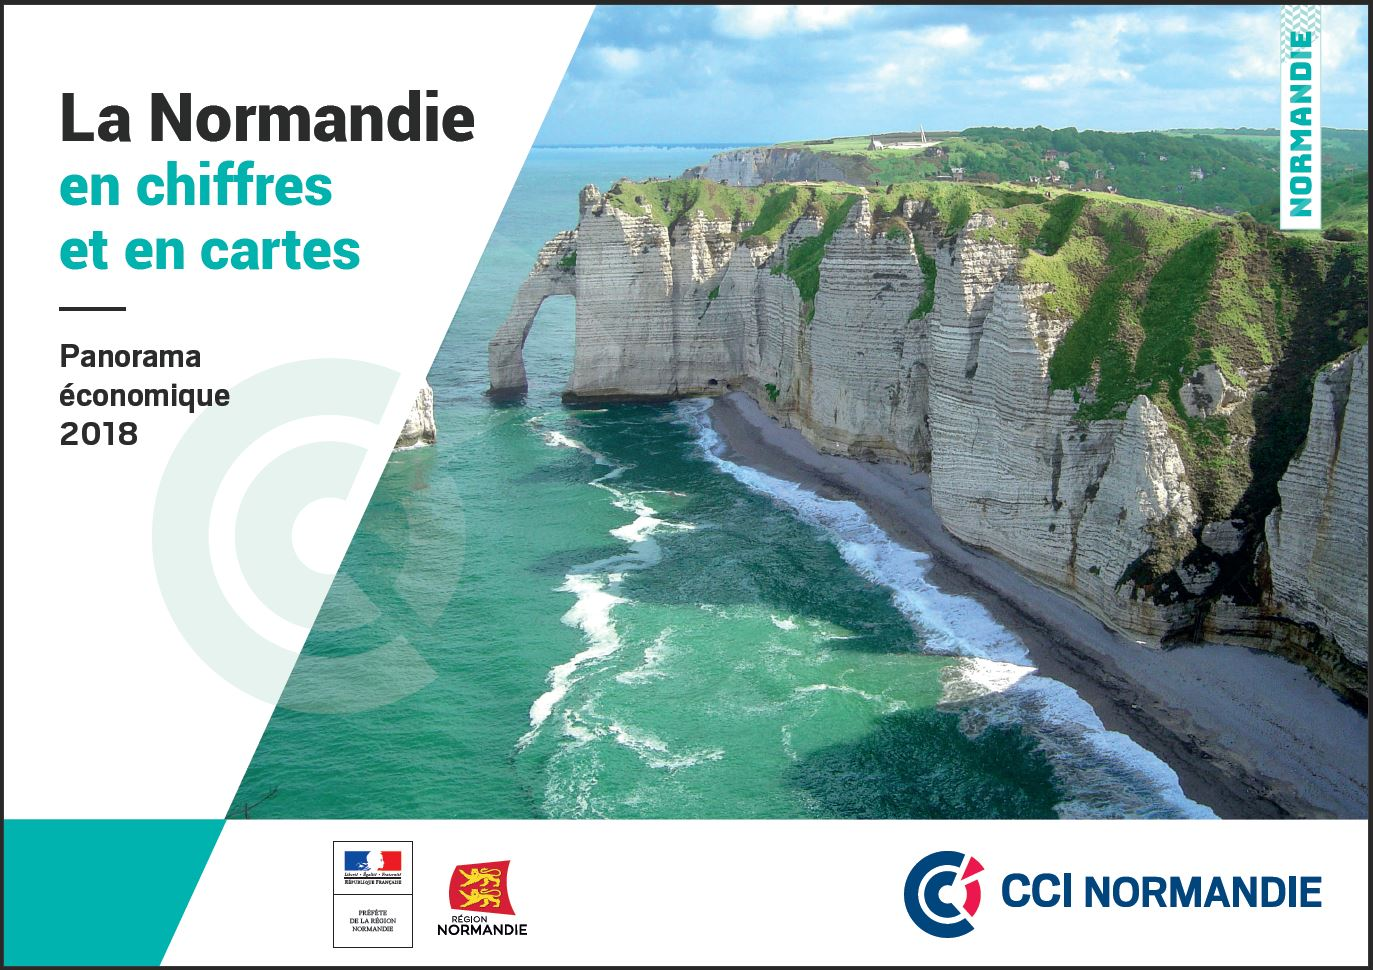 Courrier mensuel de l'Office de Documentation et d'Information de Normandie